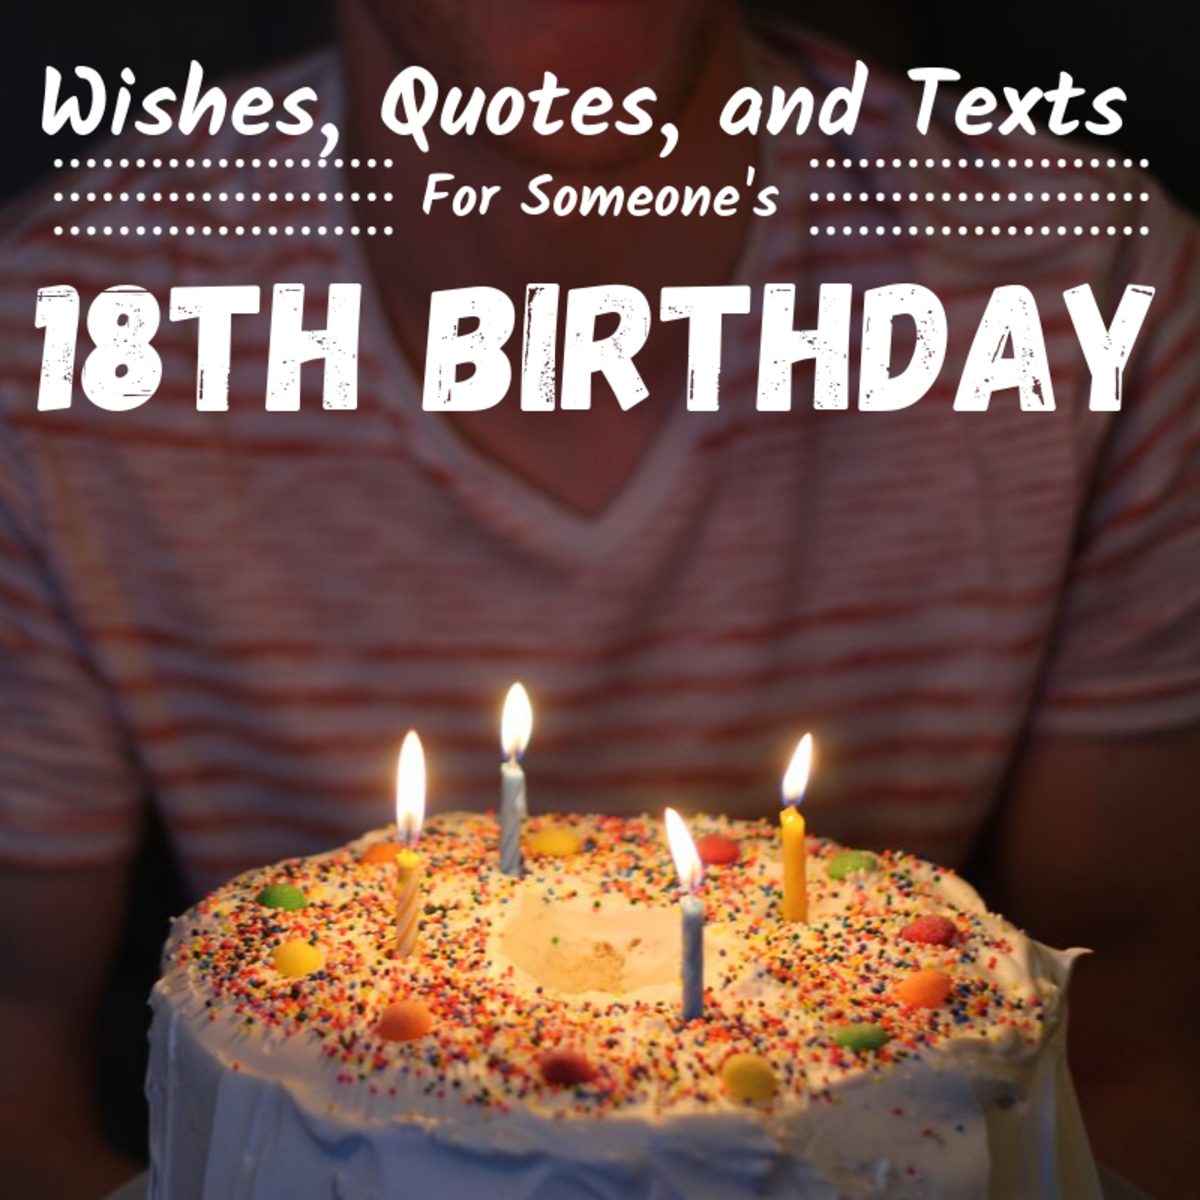 Pleasing 18Th Birthday Wishes Texts And Quotes 152 Example Messages Funny Birthday Cards Online Fluifree Goldxyz